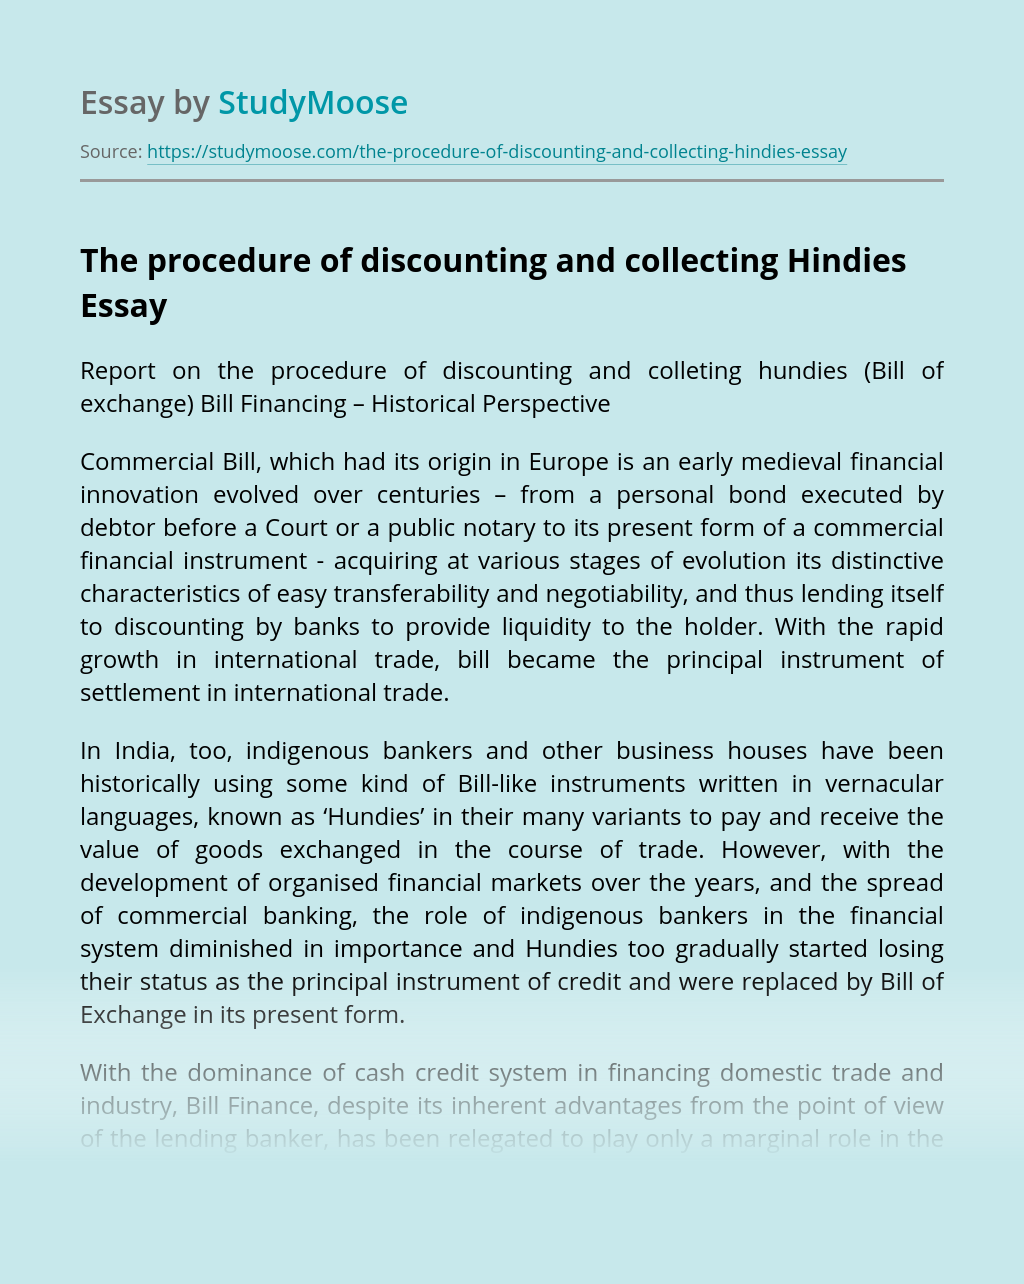 The procedure of discounting and collecting Hindies